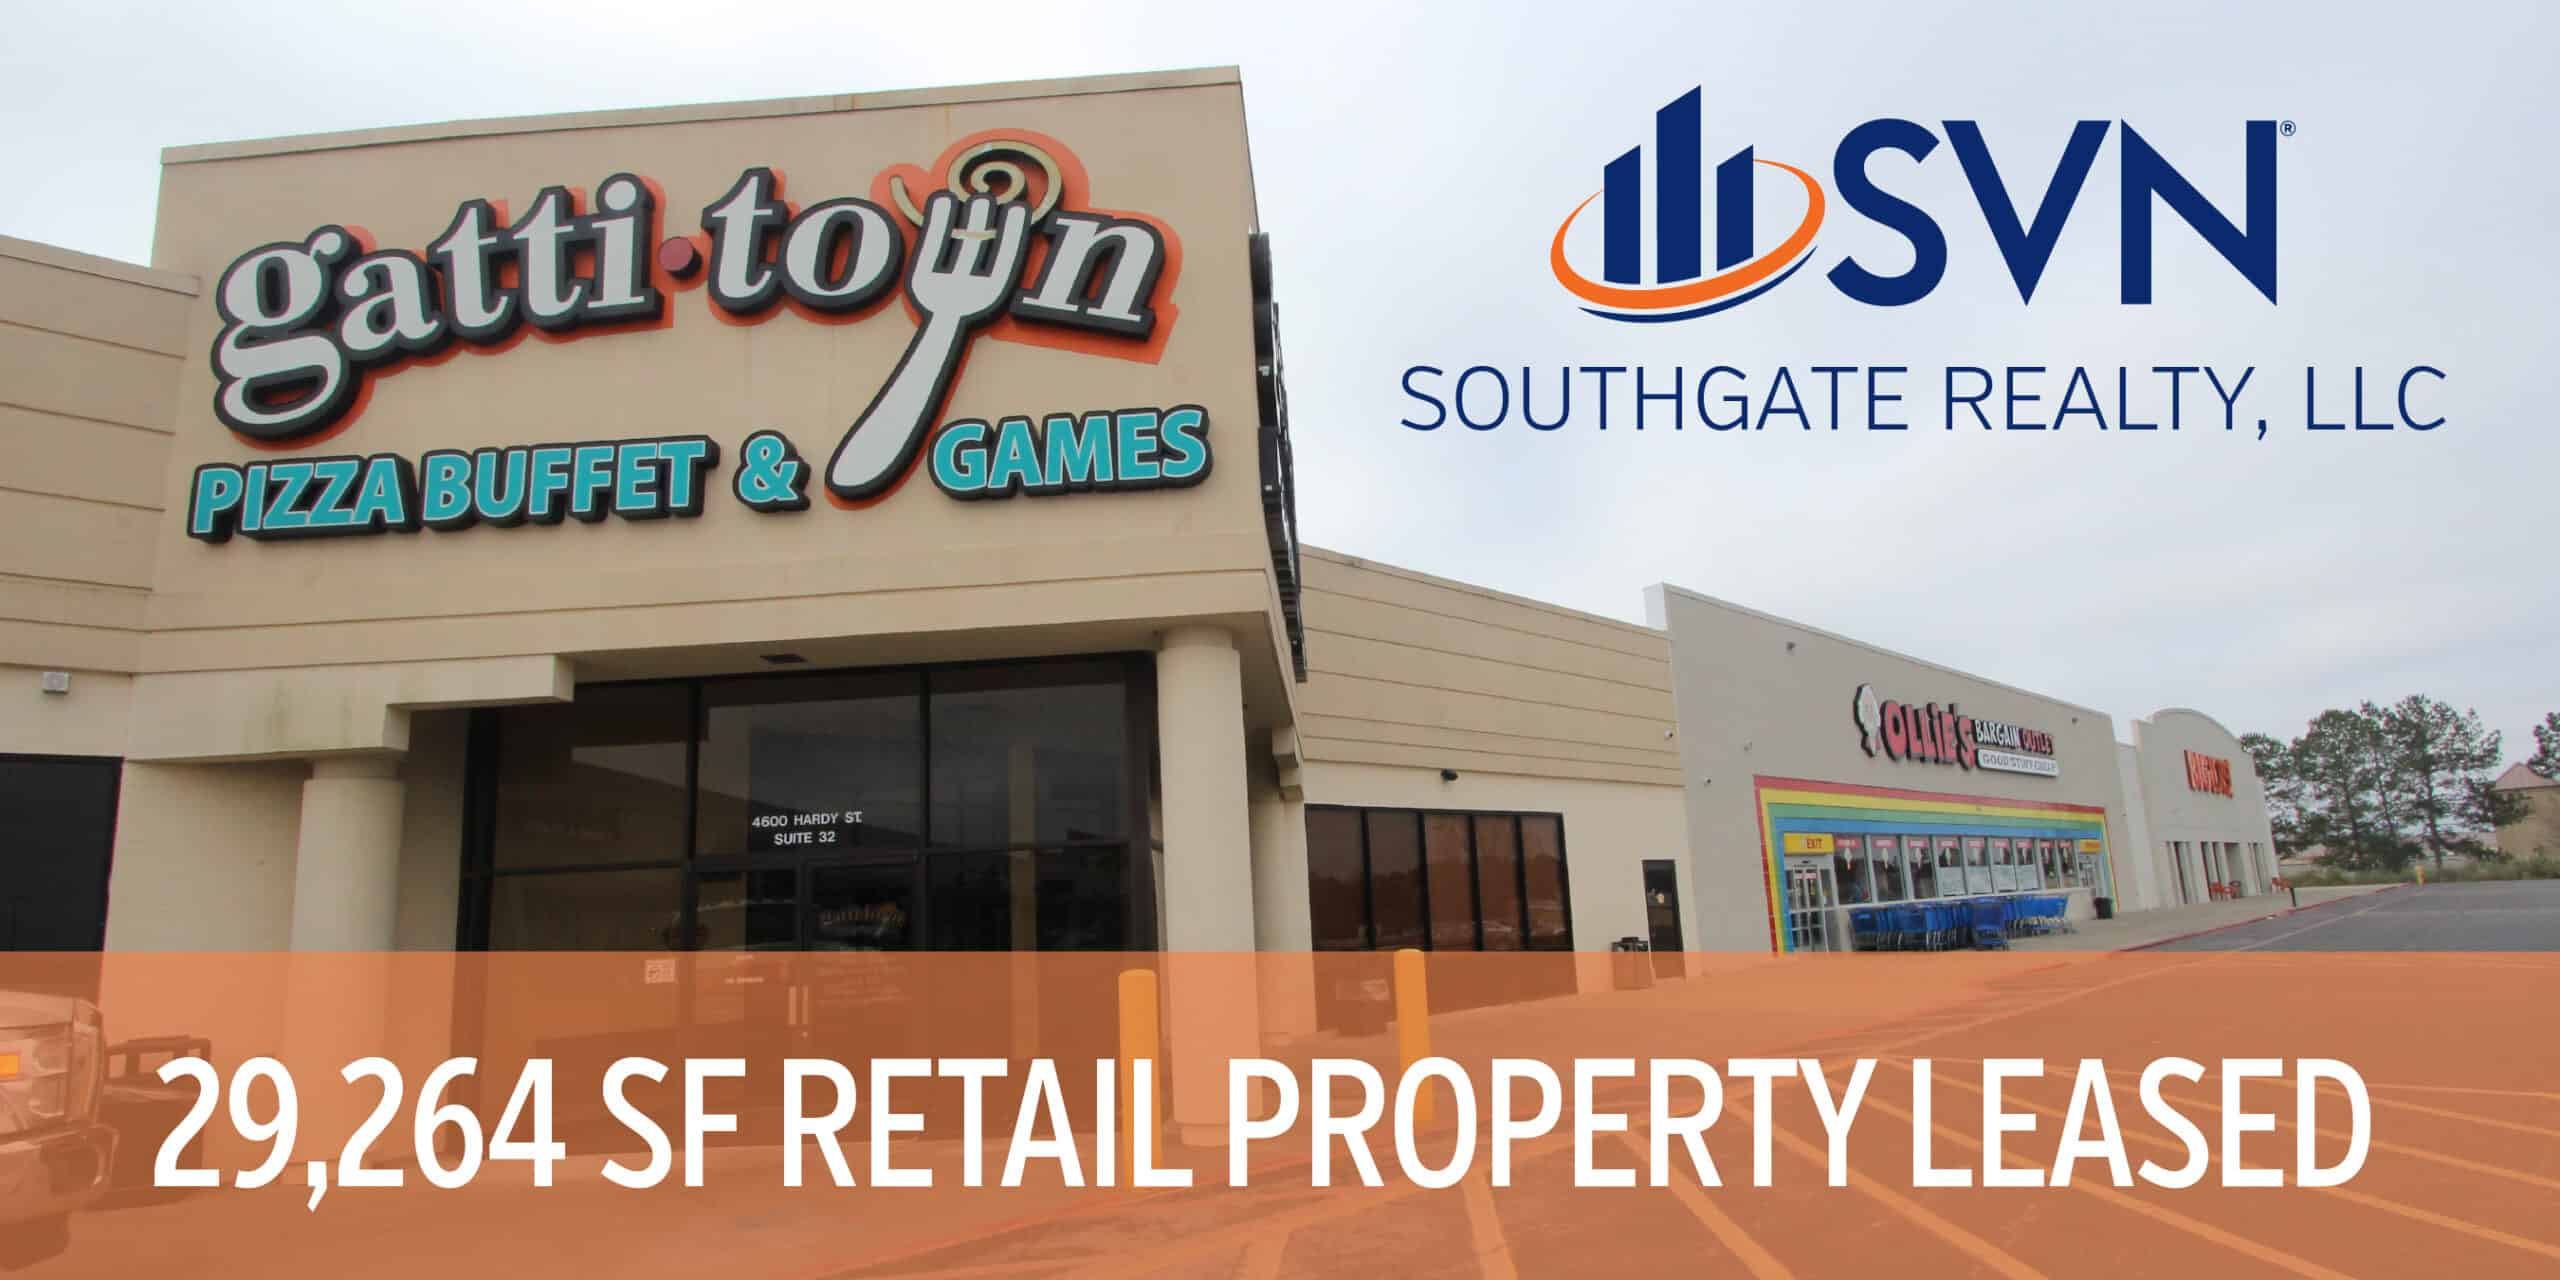 SVN | Southgate Realty, LLC Closes 29K+ SF Lease